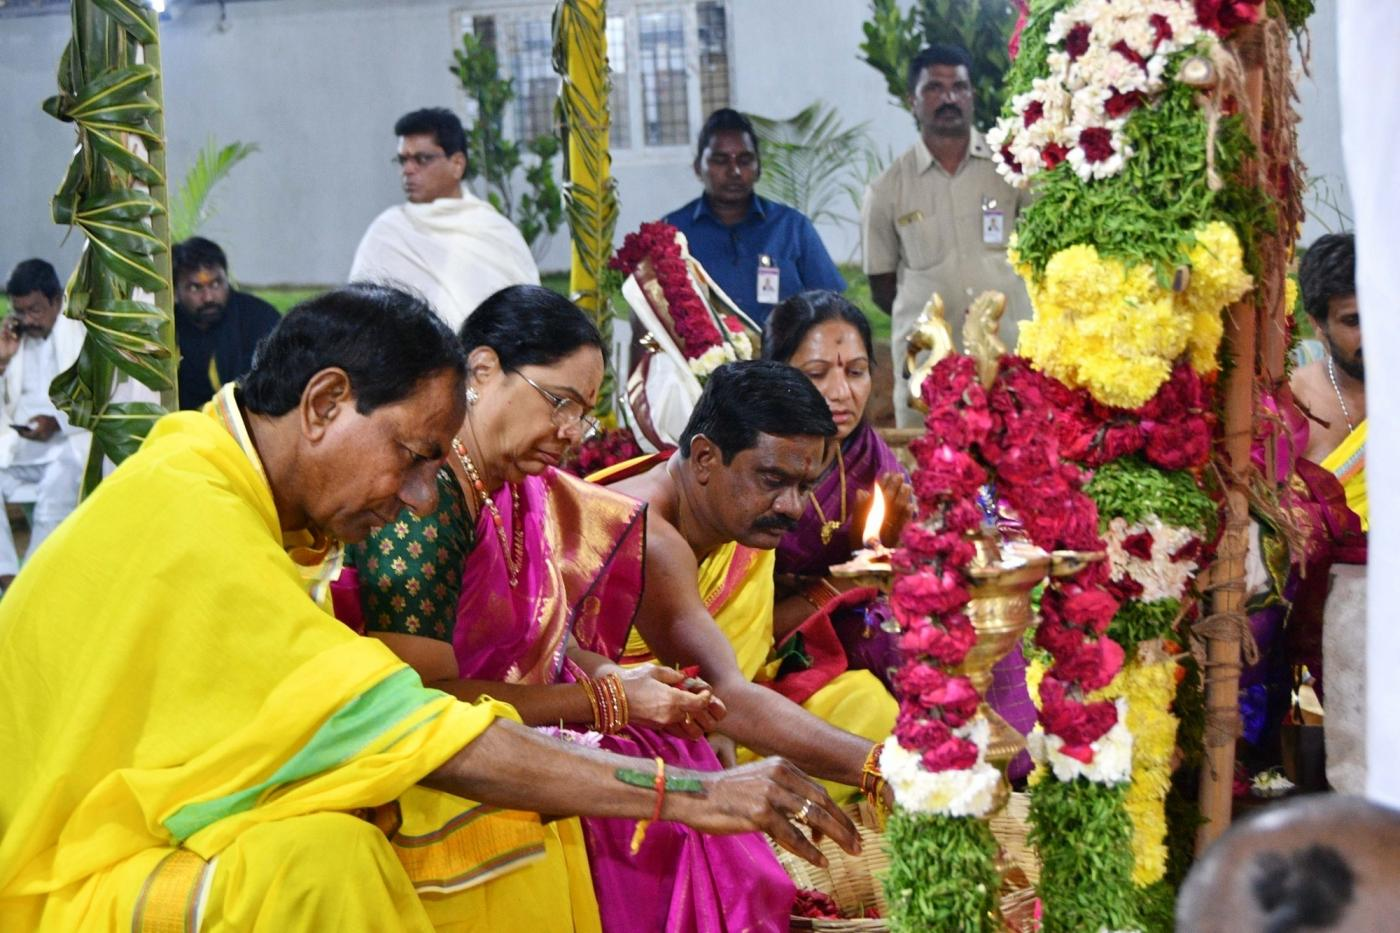 Siddipet: Telangana Chief Minister K.Chandrashekhar Rao during the five-day 'Chandi Yagam' of that began with nearly 300 priests participating in the first day's rituals amidst Vedic recitations at his farmhouse at Yerravalli village in Siddipet district on Jan 21, 2019. (Photo: IANS) by .